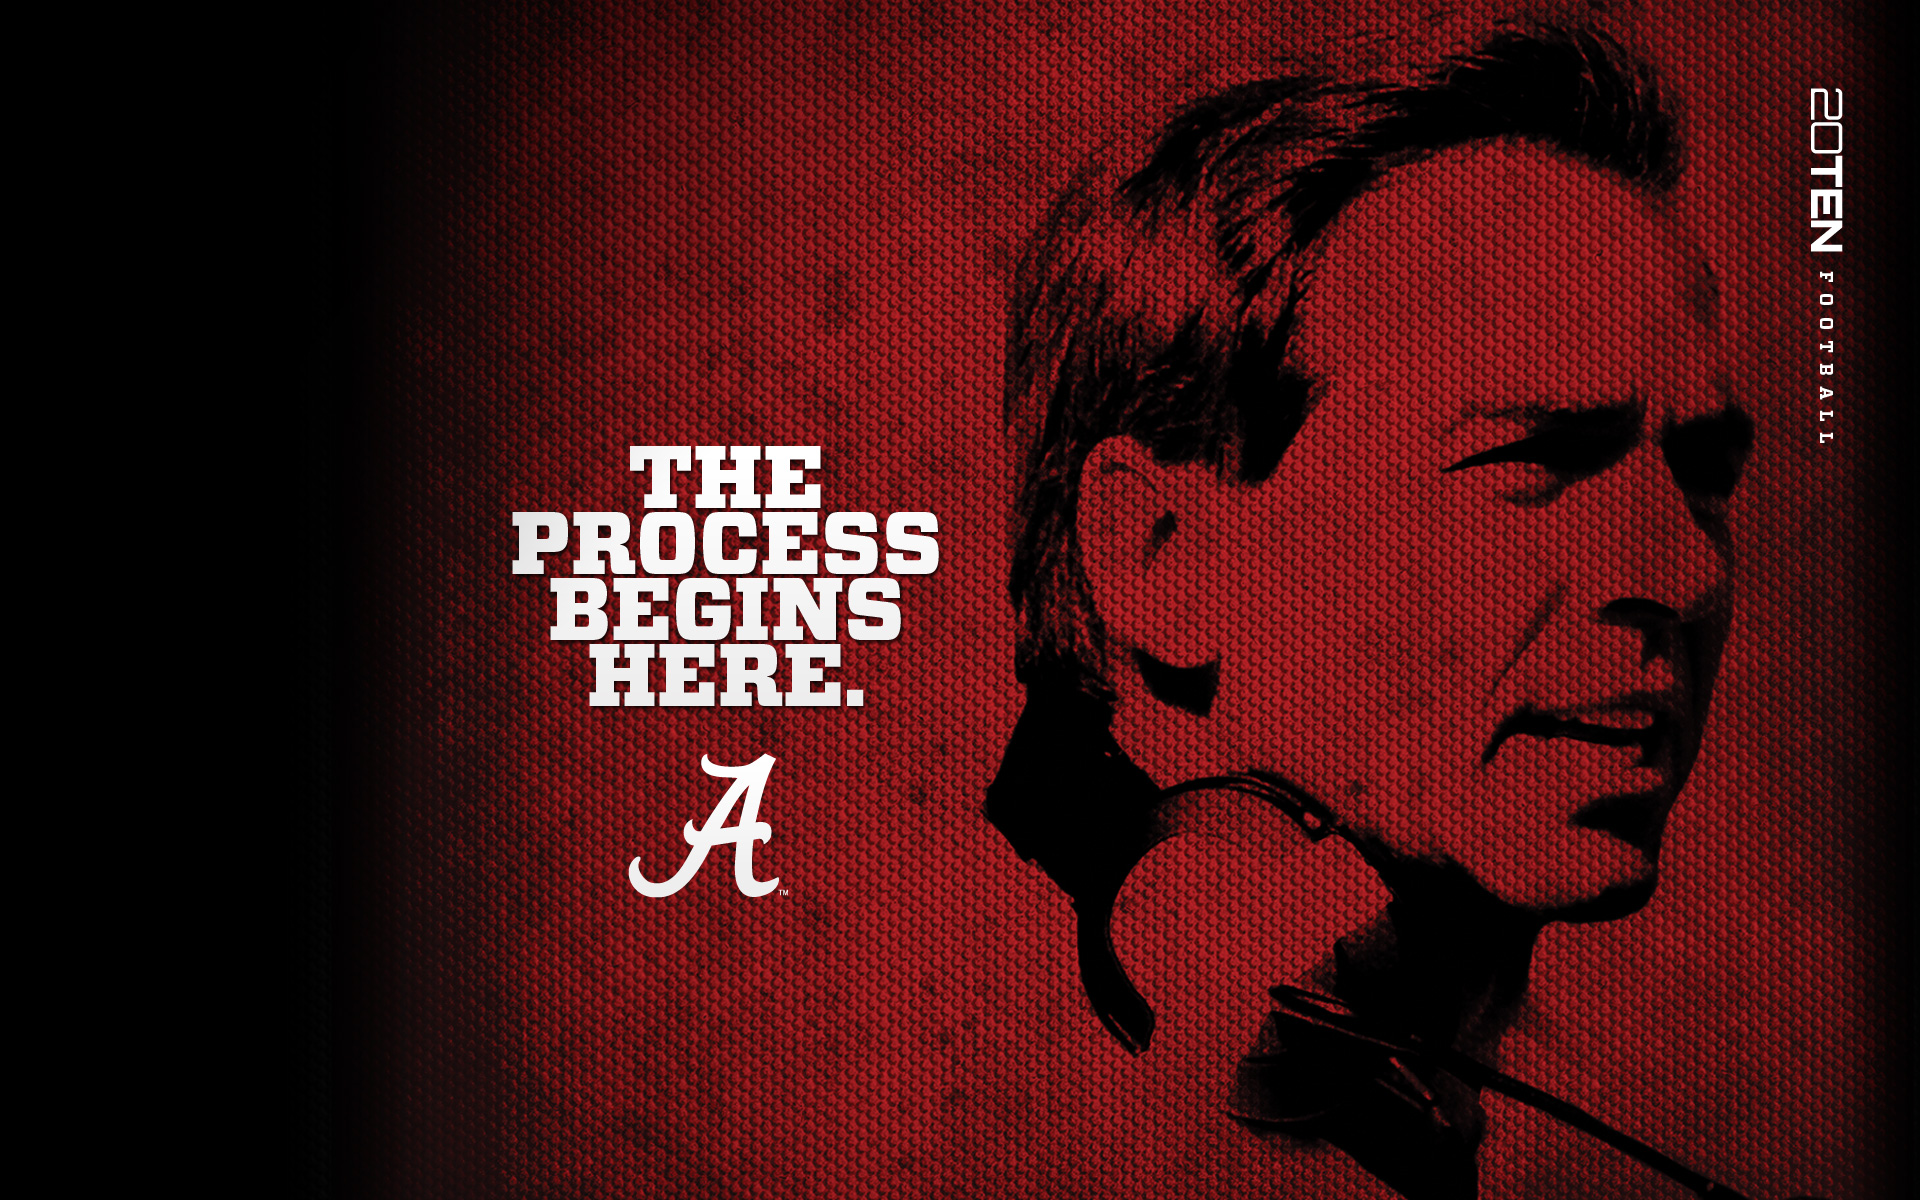 Alabama Crimson Tide Football Wikipedia The 1920x1200